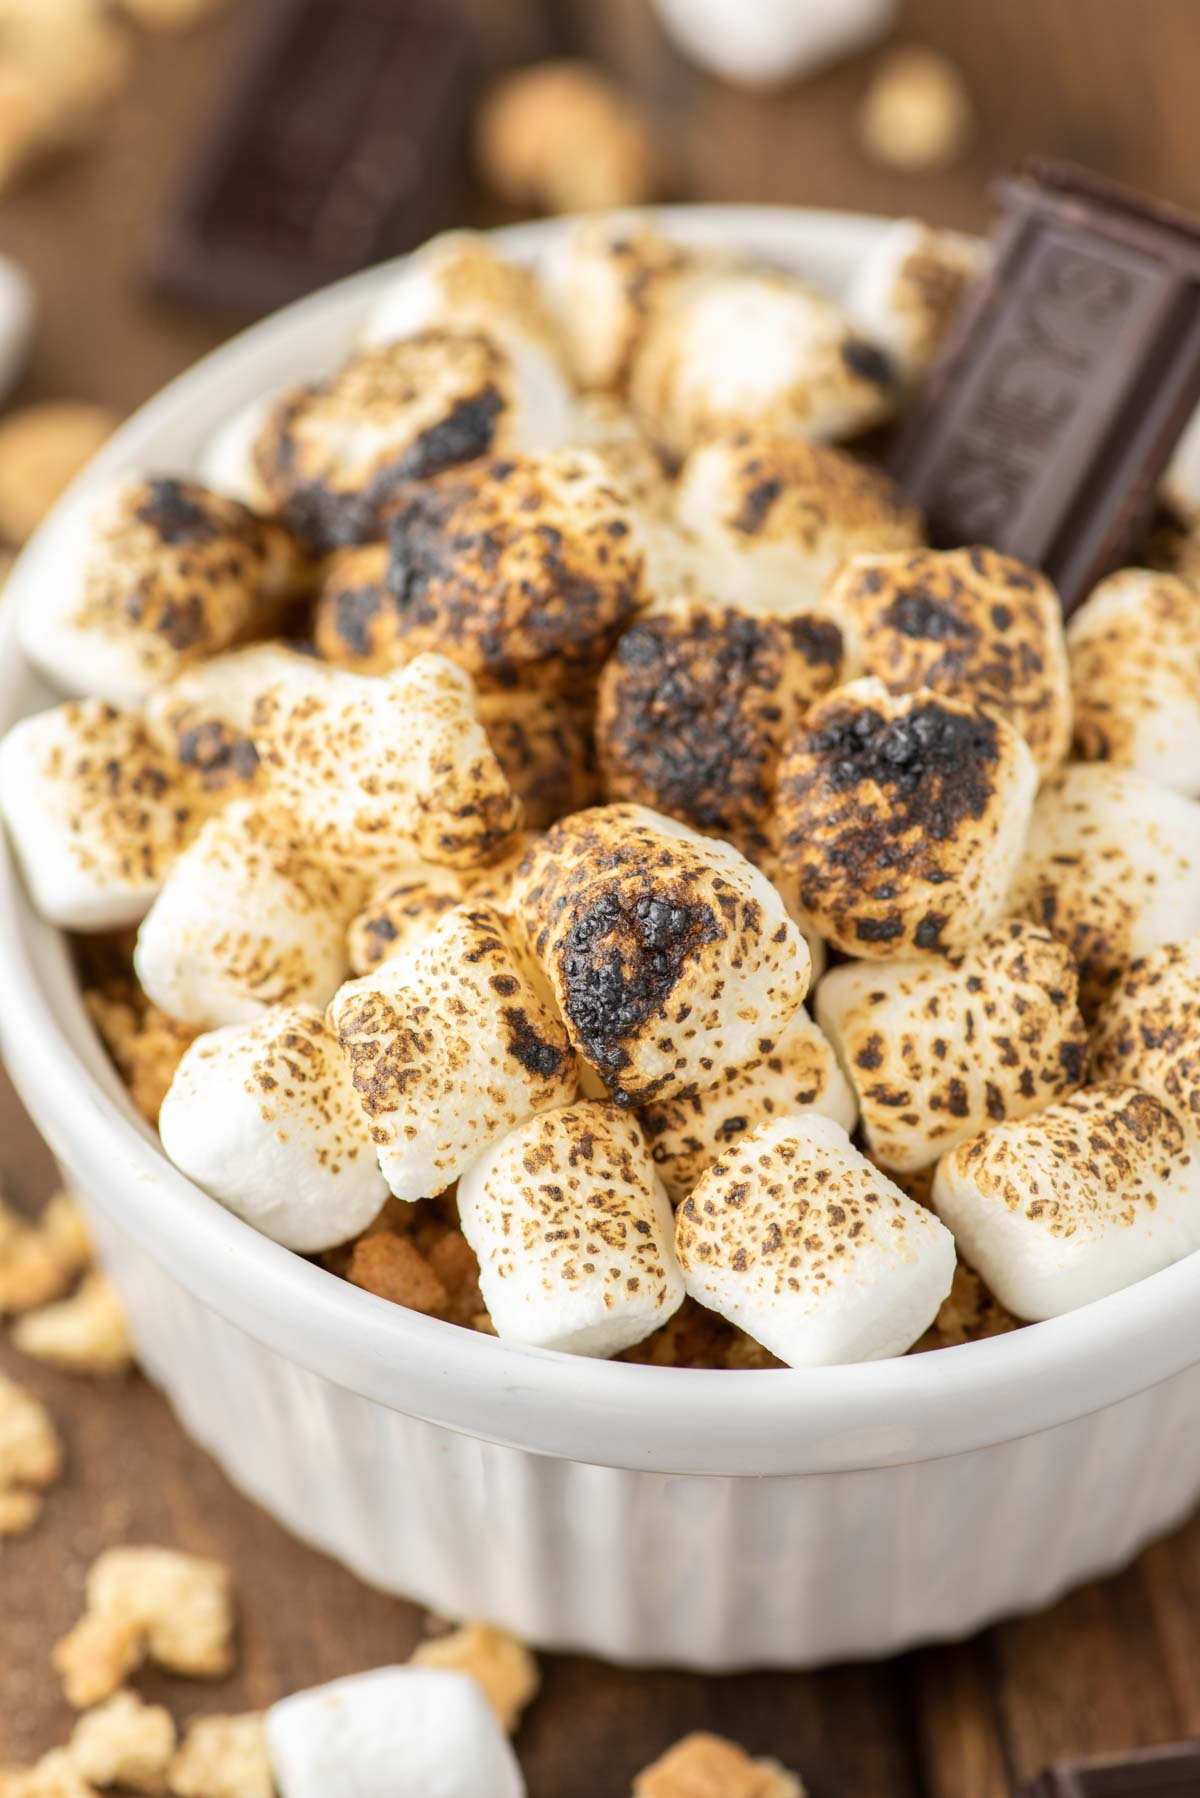 s'mores crème brûlée in white ramekin that is torched